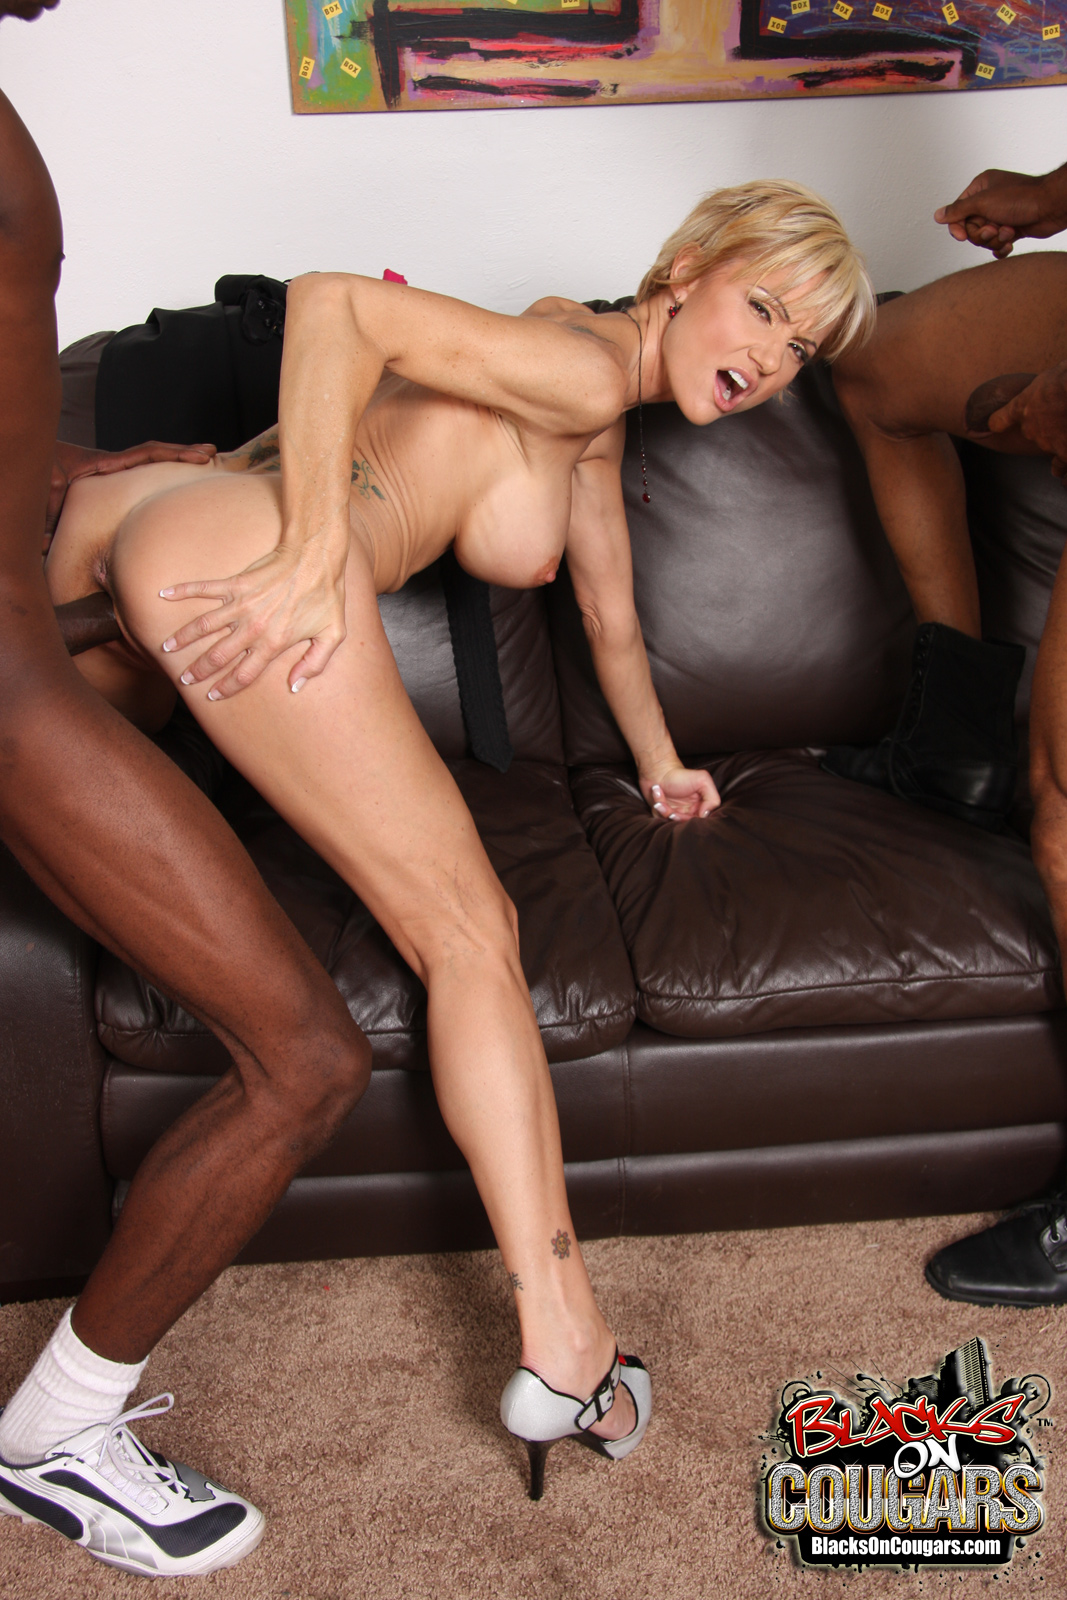 Bridget powers midget anal